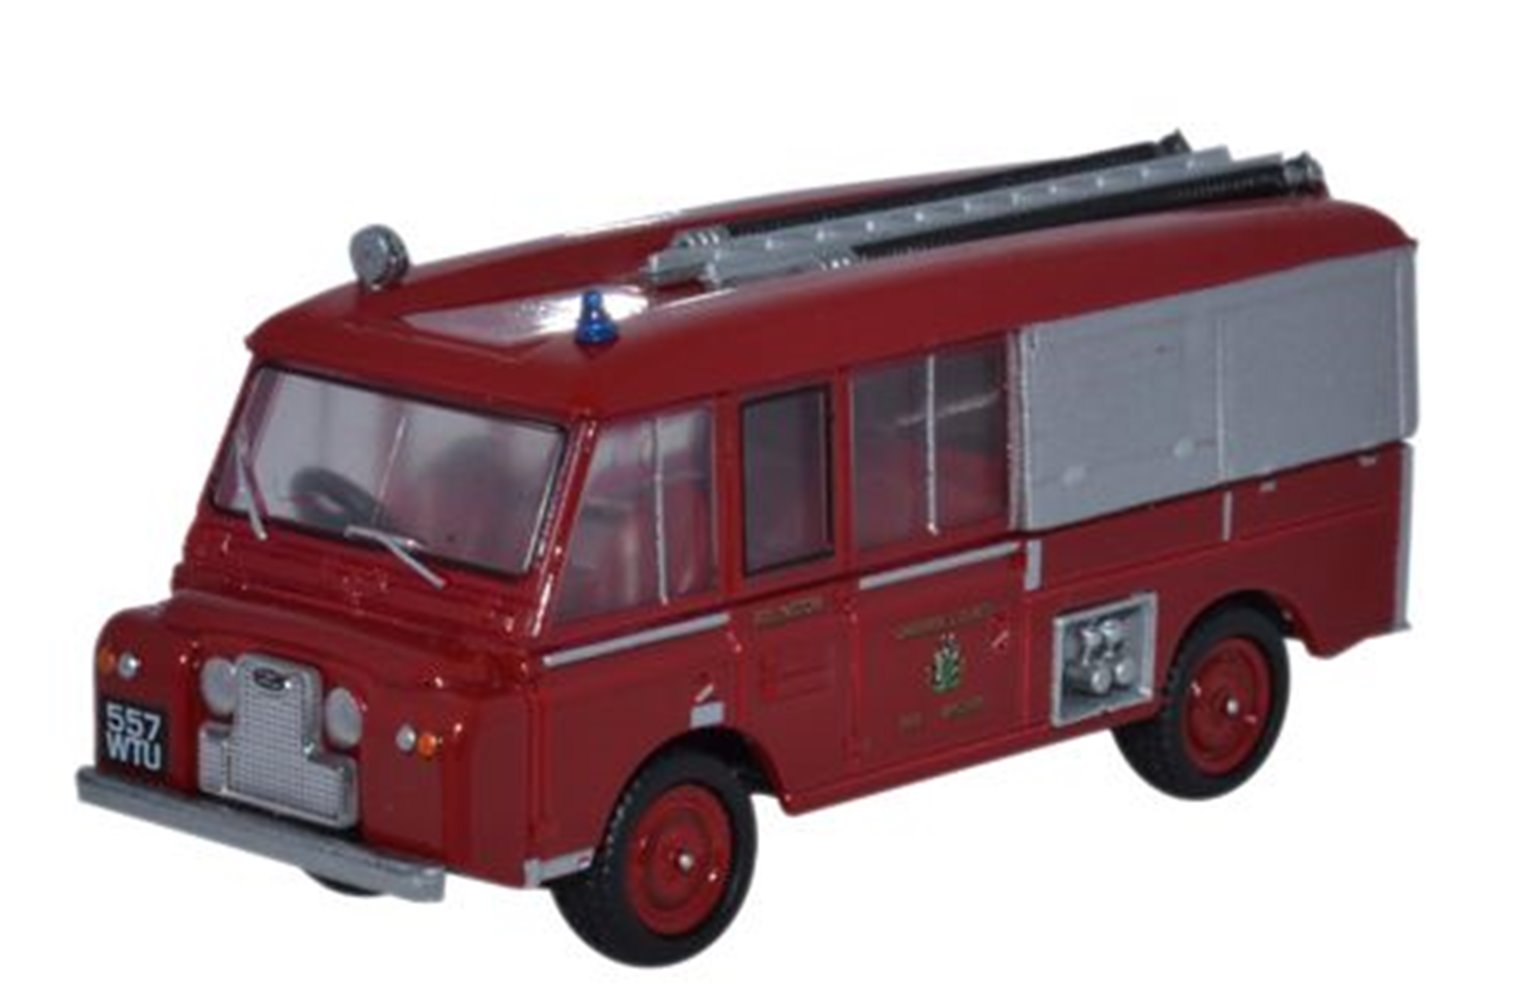 Land Rover FT6 Carmichael Cheshire County Fire Brigade